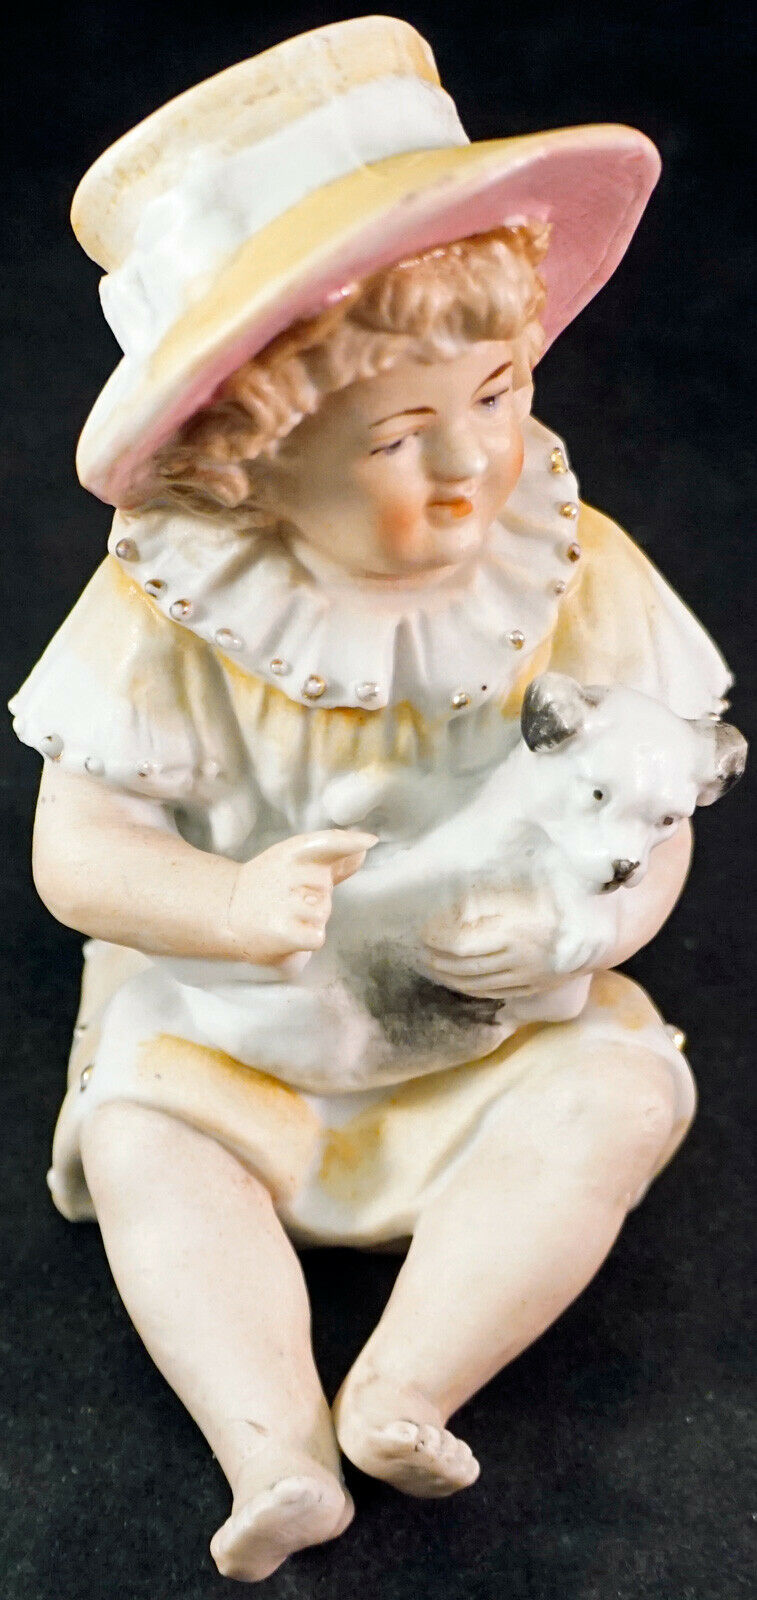 Antique Piano Baby Gebruder Heubach Little Girl in Hat with Dog BISQUE FIGURINE - $99.00